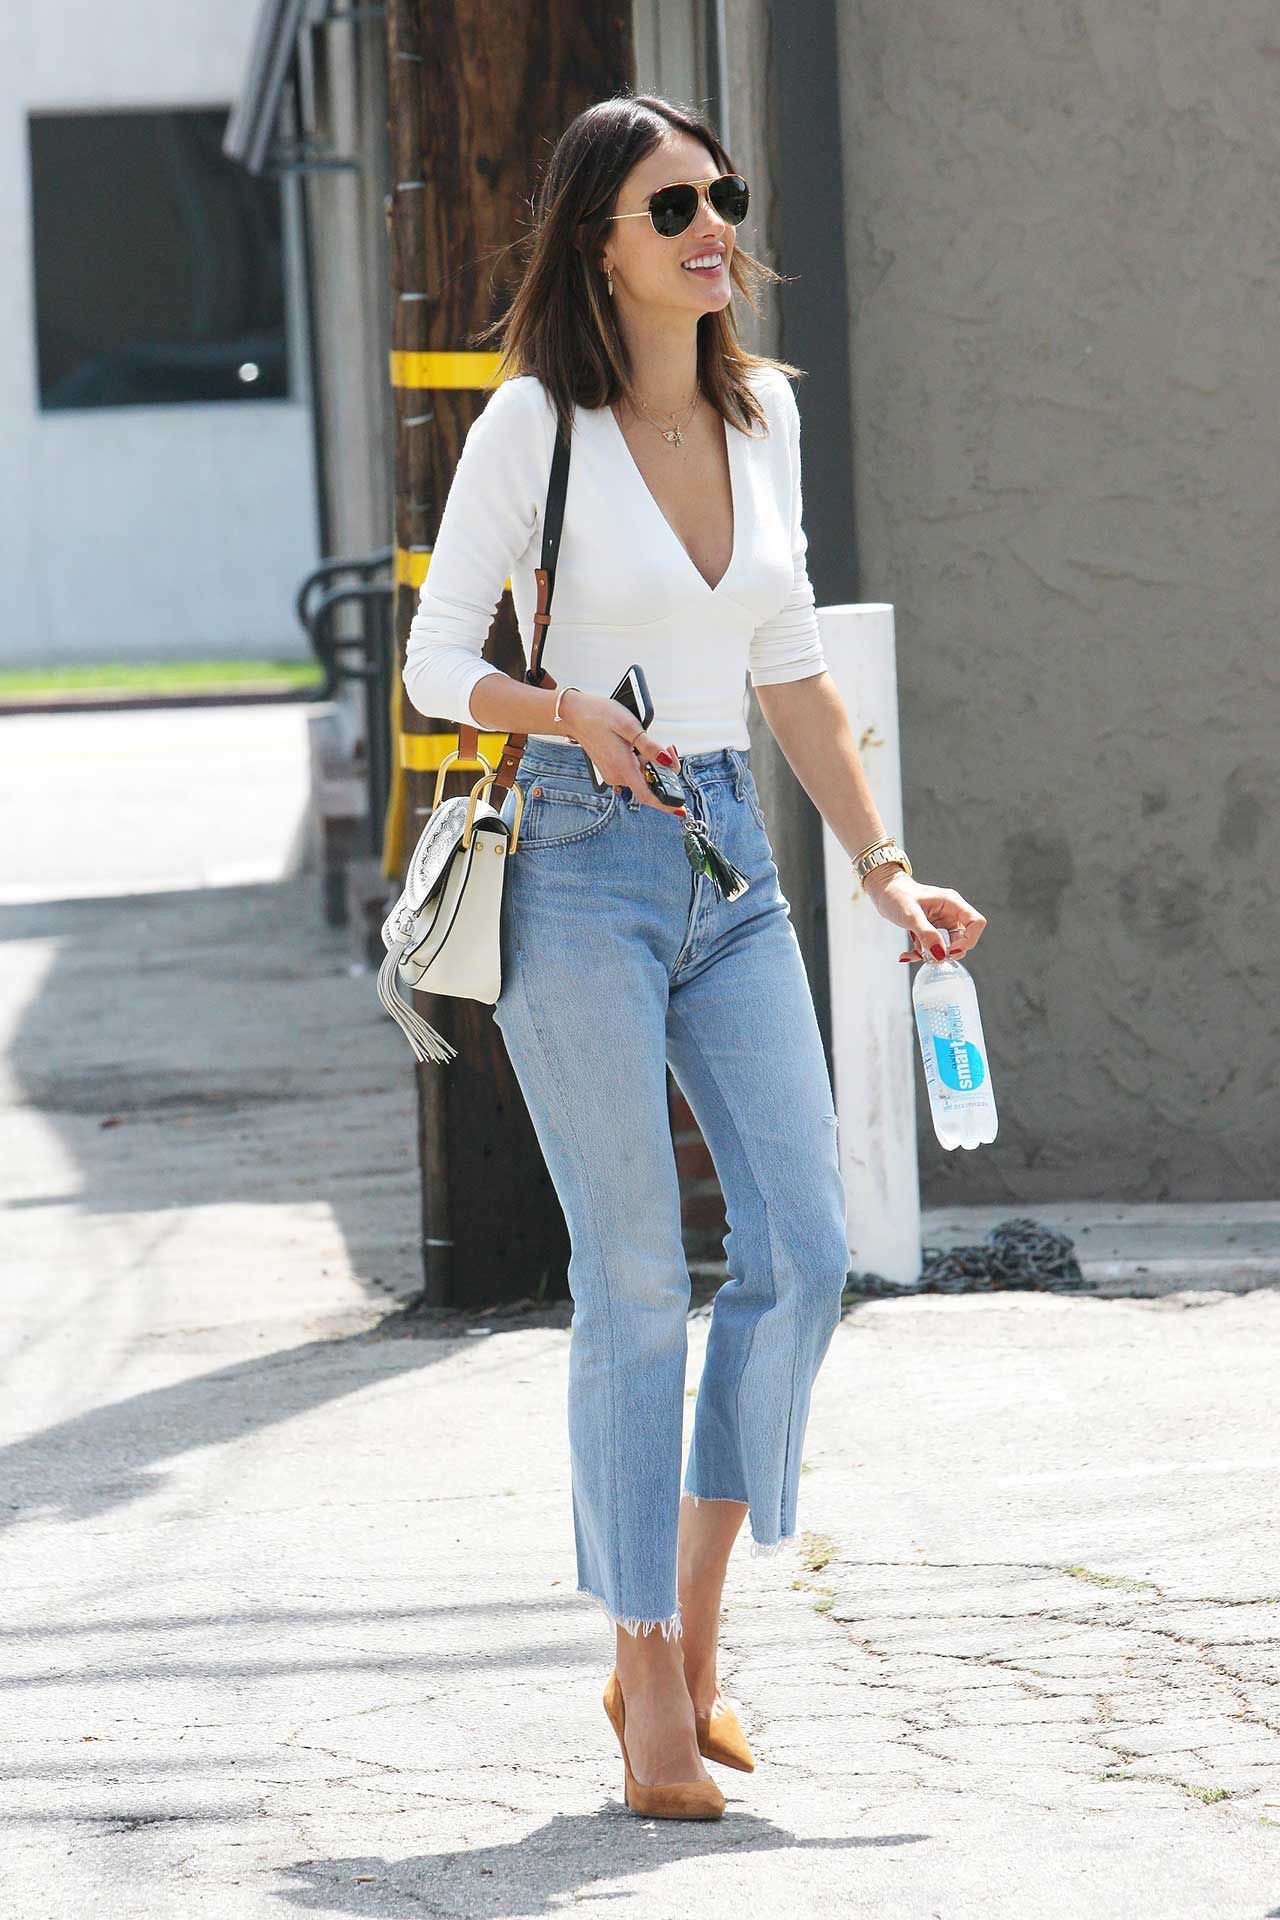 bd2c44313ea47 Alessandra-Ambrosio-REDONE-Levi s-vintage-jeans-cropped-flare ...